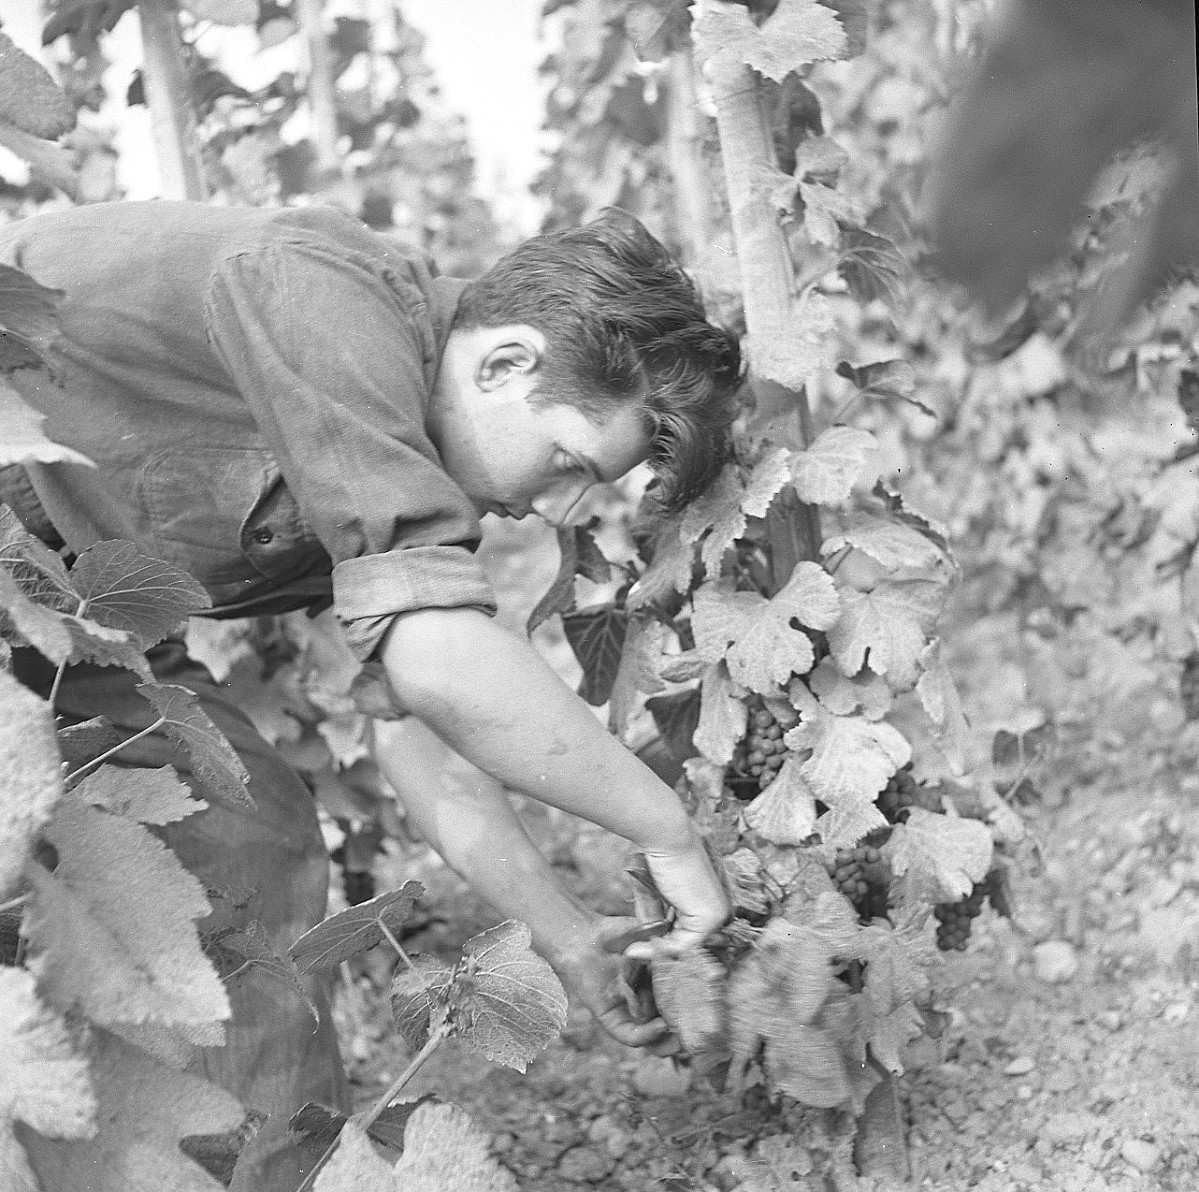 GFA 17/510963.7: Grape harvest at the apprentices' home in Dachsen